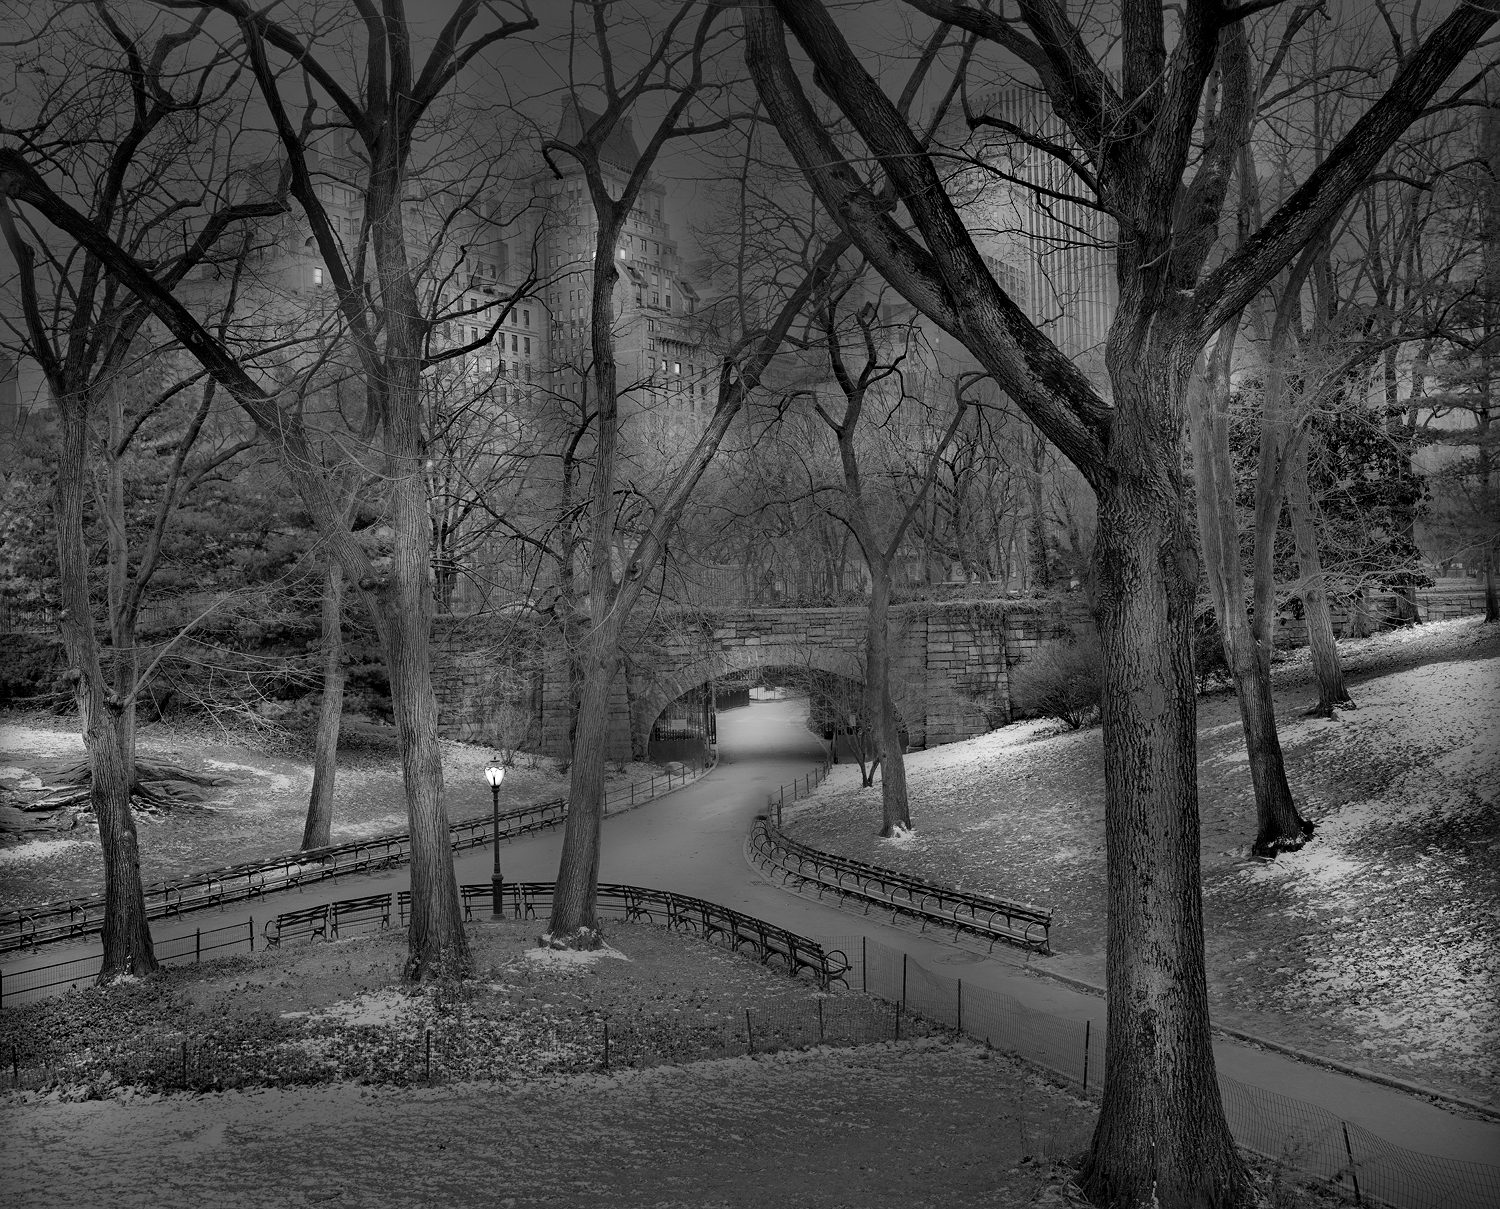 Deep In A Dream - Central Park - January Freeze